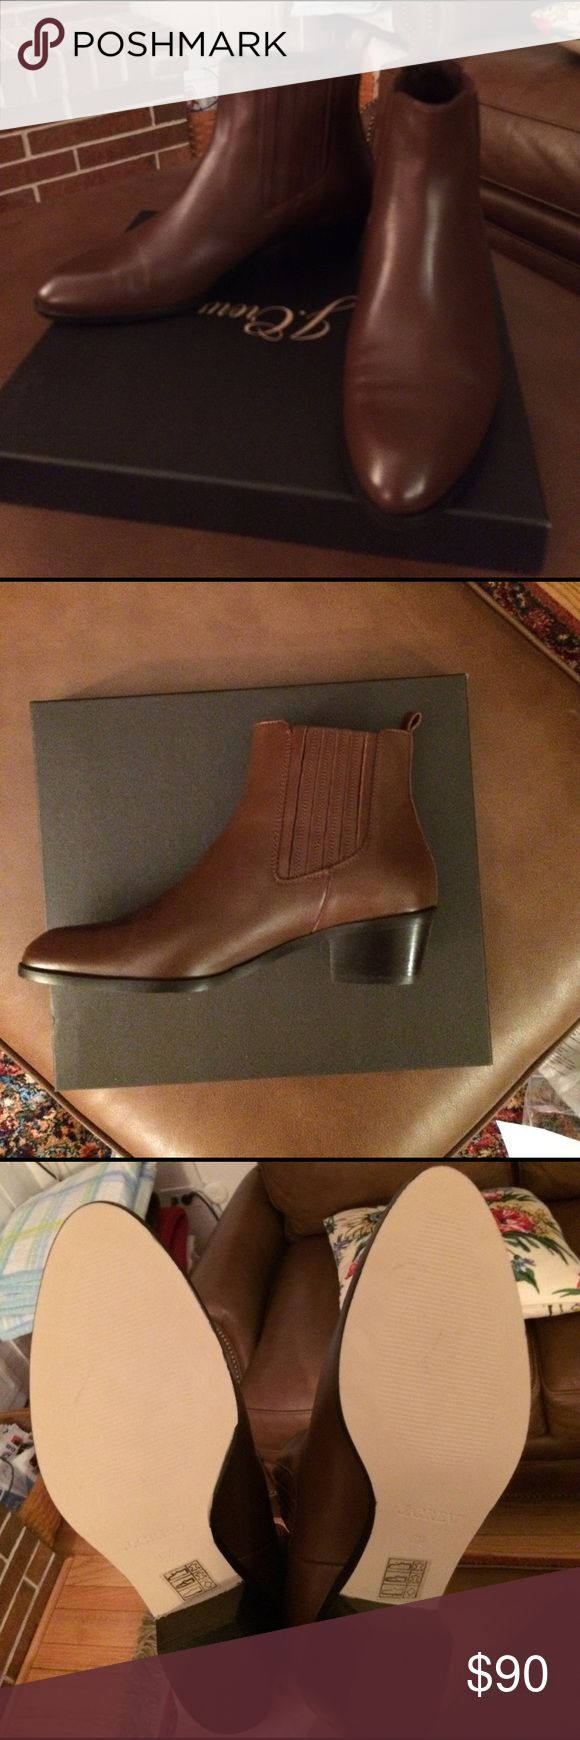 J. Crew Chelsea Boot Brand new, never been worn. I bought them on final sale and they are a tad too tight! They are so cute and a timeless classic J. Crew Shoes Ankle Boots & Booties